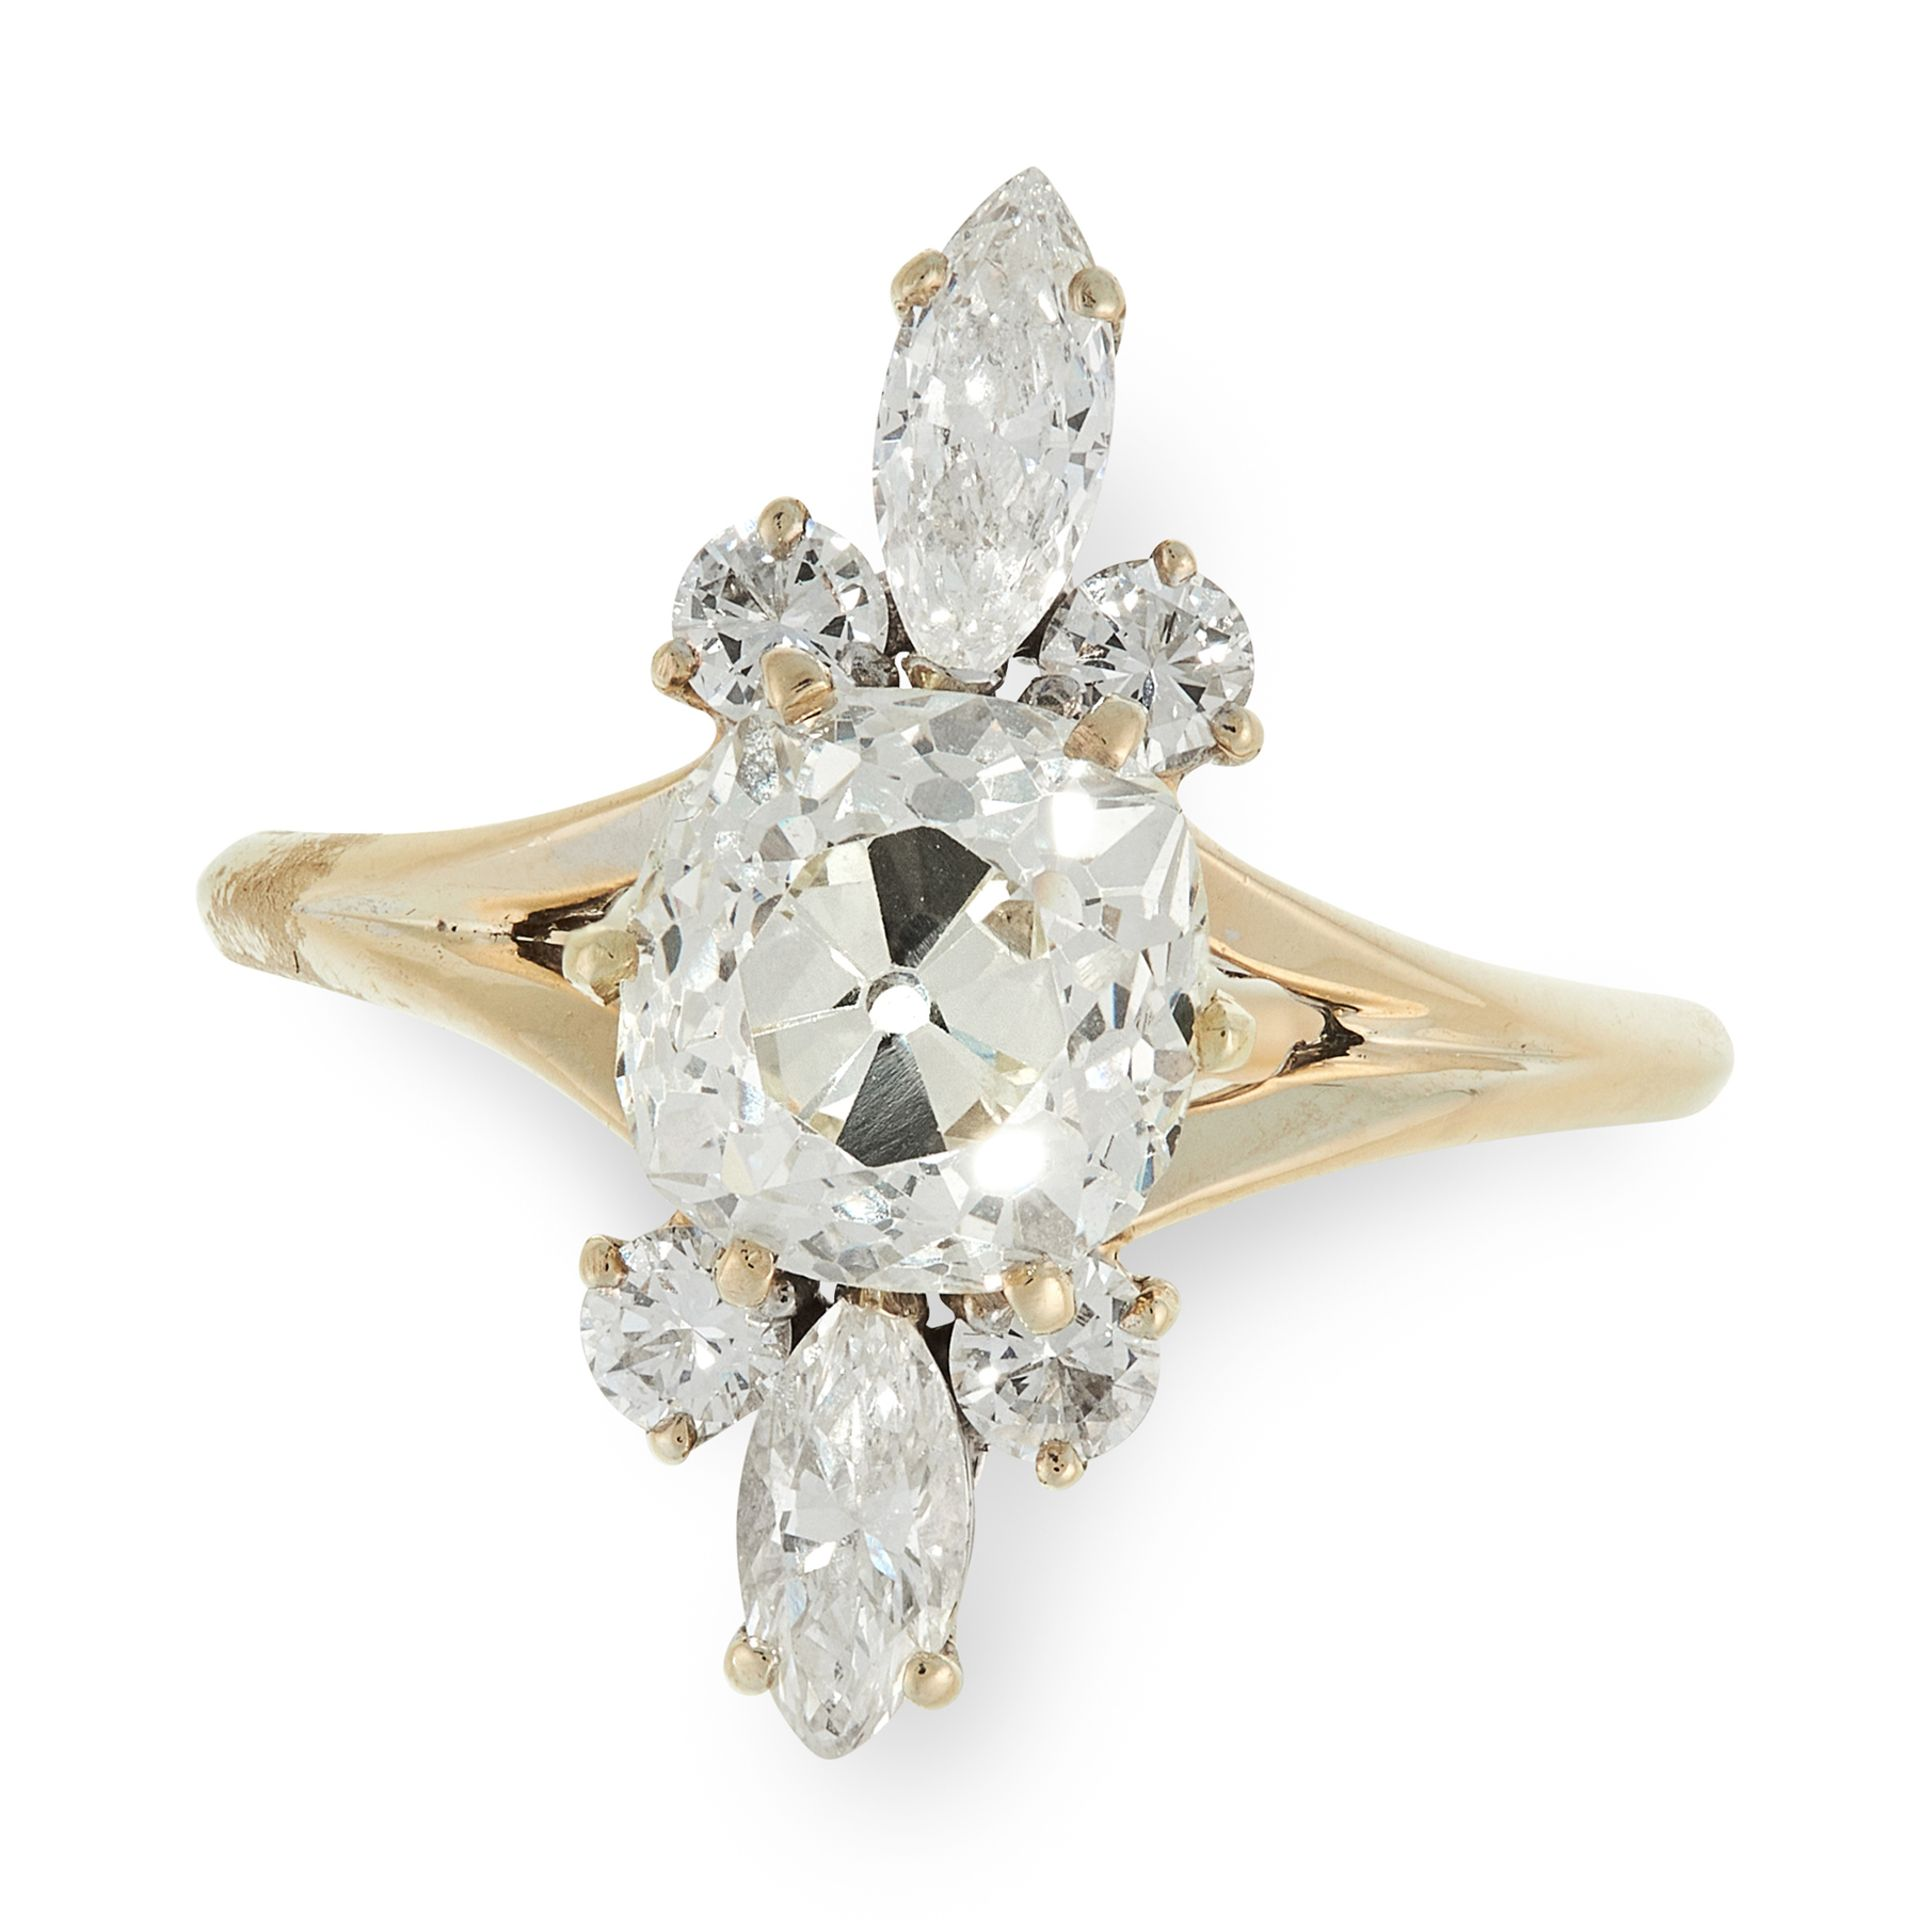 A DIAMOND DRESS RING, MAUBOUSSIN in 18ct yellow gold, set with a principal old cut diamond of 2.44